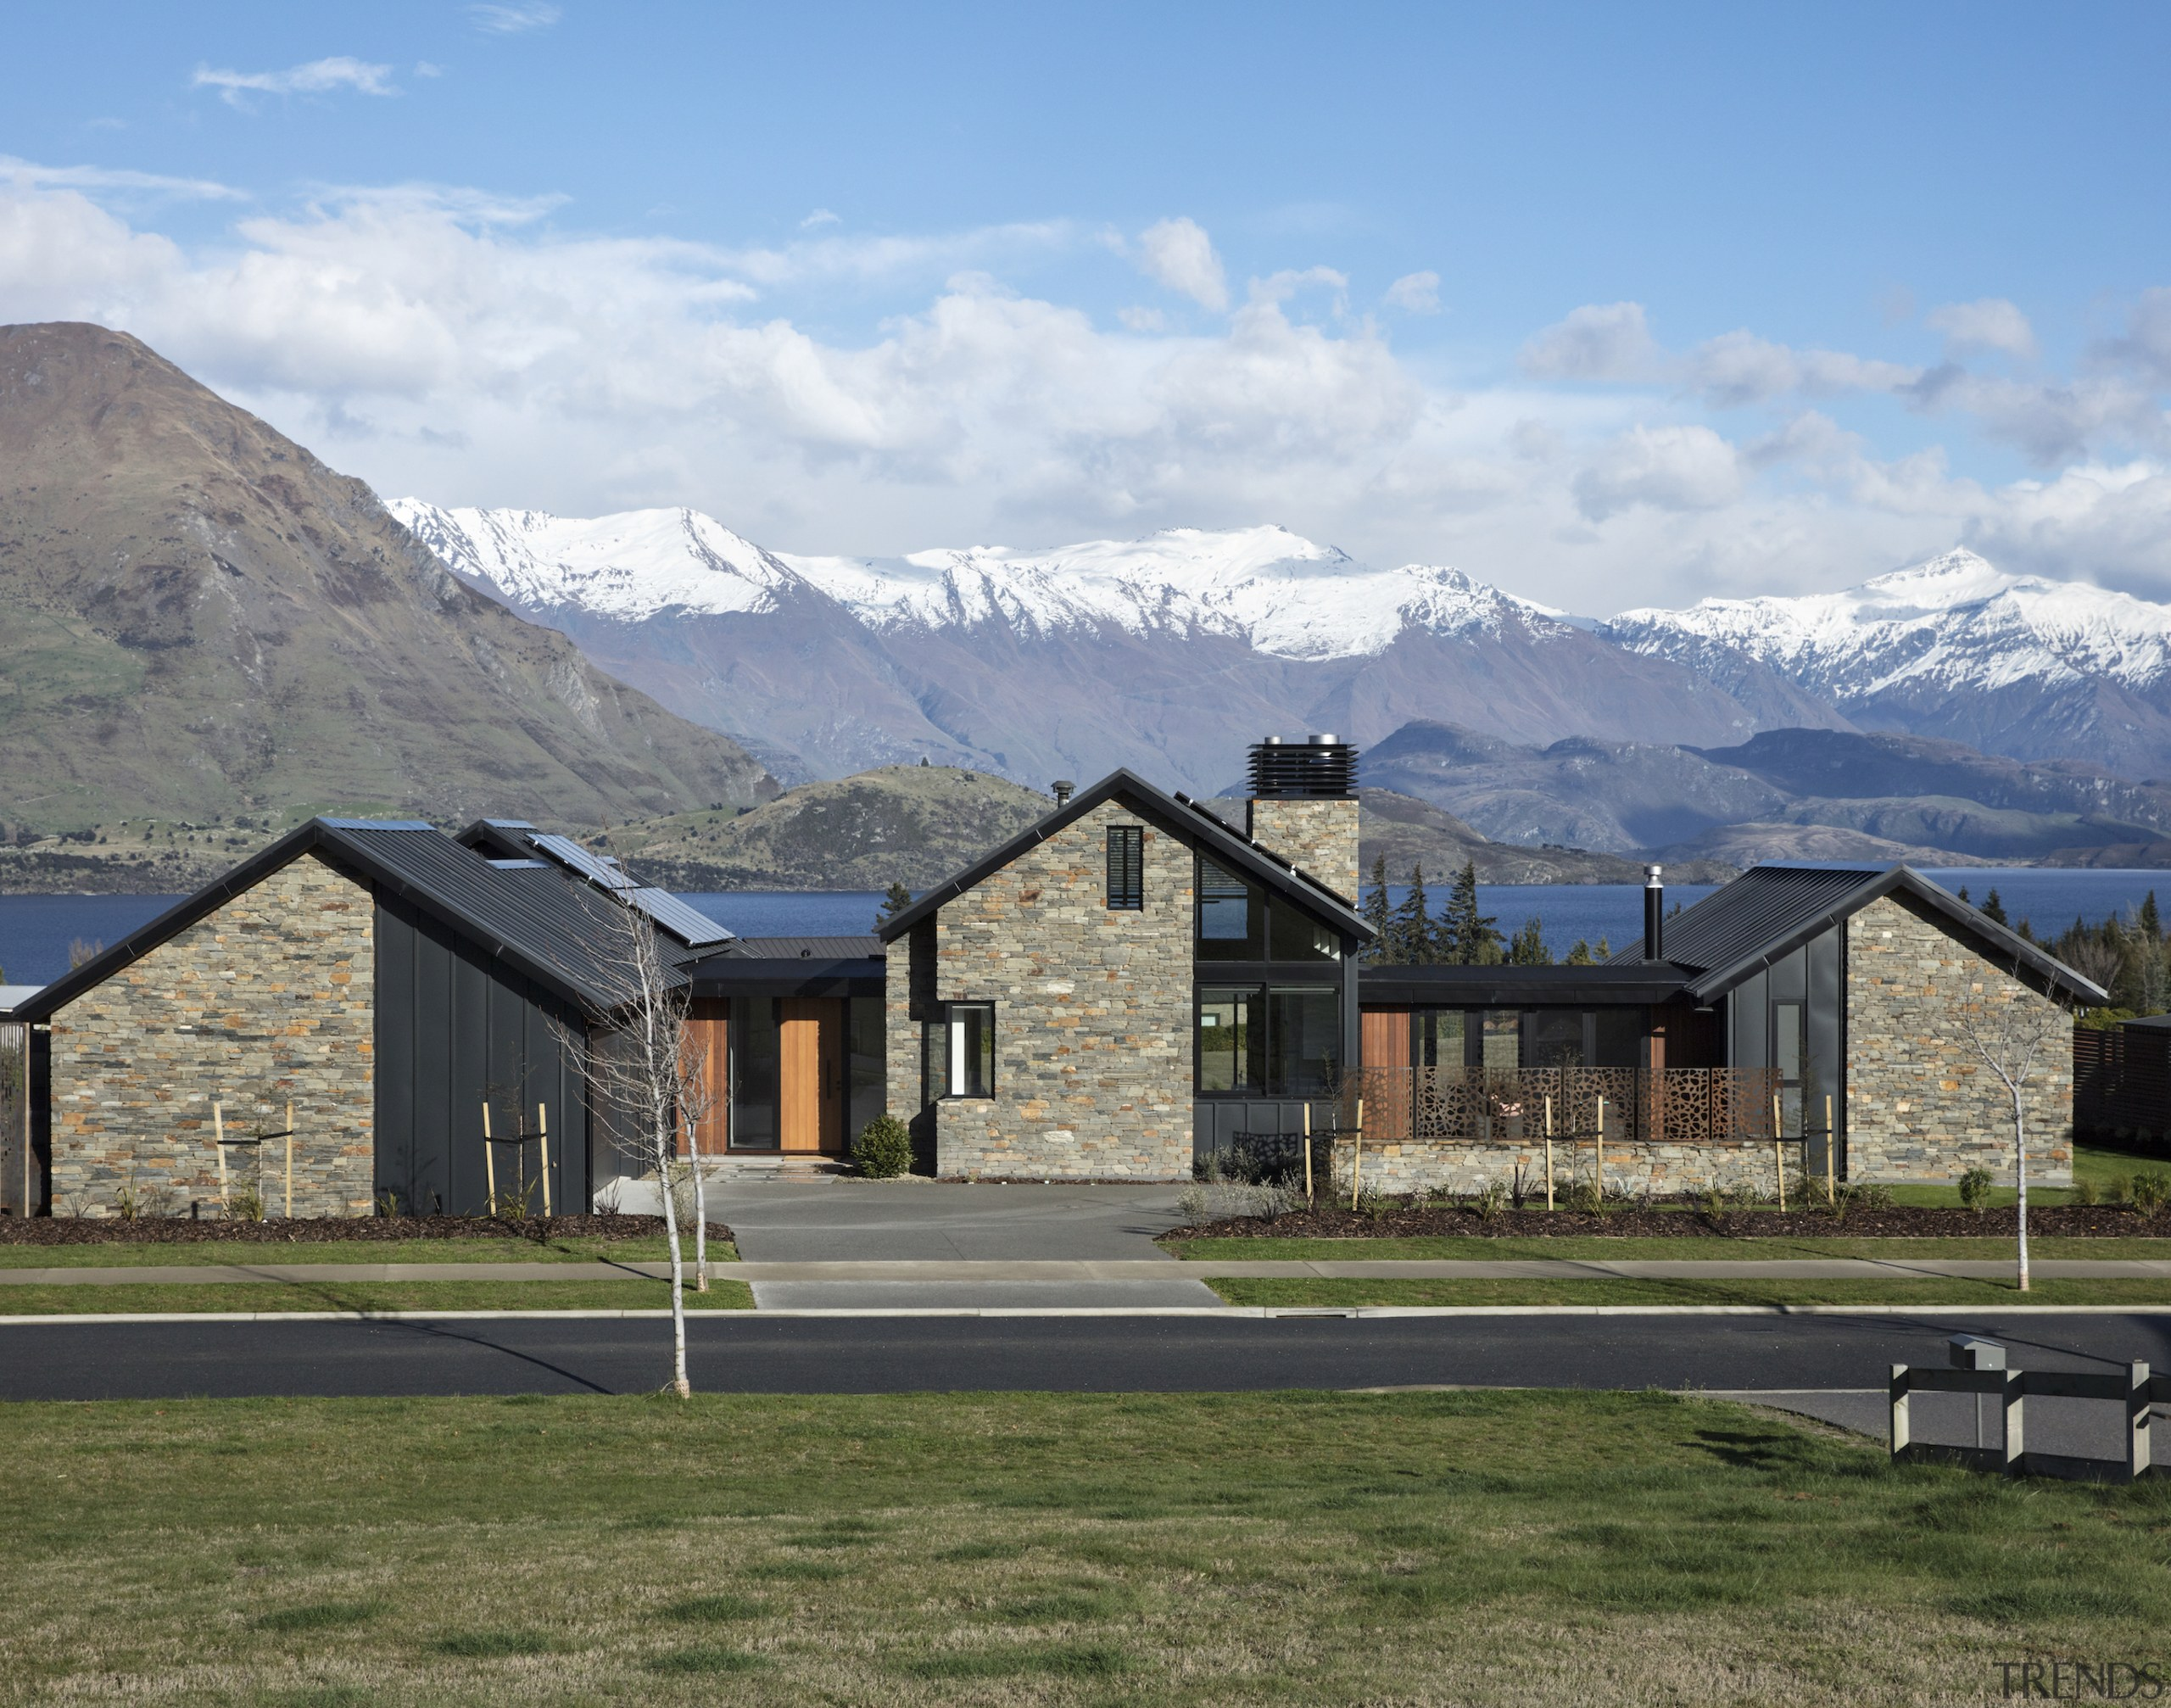 Runner-up – Condon Scott Architects – TIDA New alps, cloud, cottage, elevation, estate, farmhouse, fell, grass, highland, home, house, land lot, landscape, log cabin, mountain, mountain range, mountainous landforms, property, ranch, real estate, residential area, rural area, sky, suburb, winter, gray